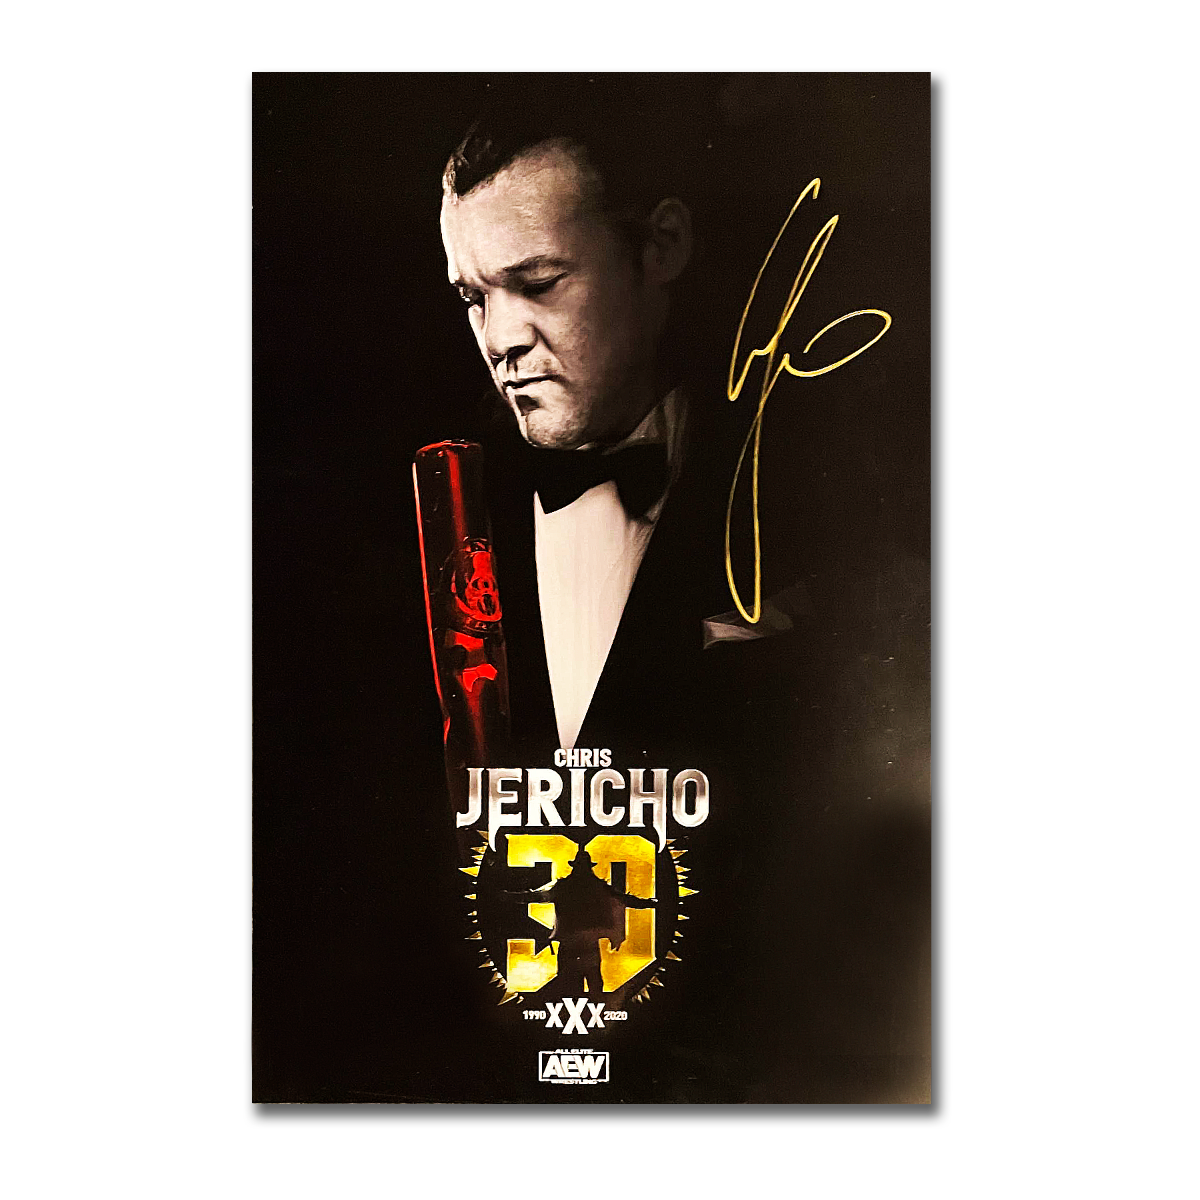 AEW Is Jericho All Elite Wrestling  T-Shirt, Adult /& Youth